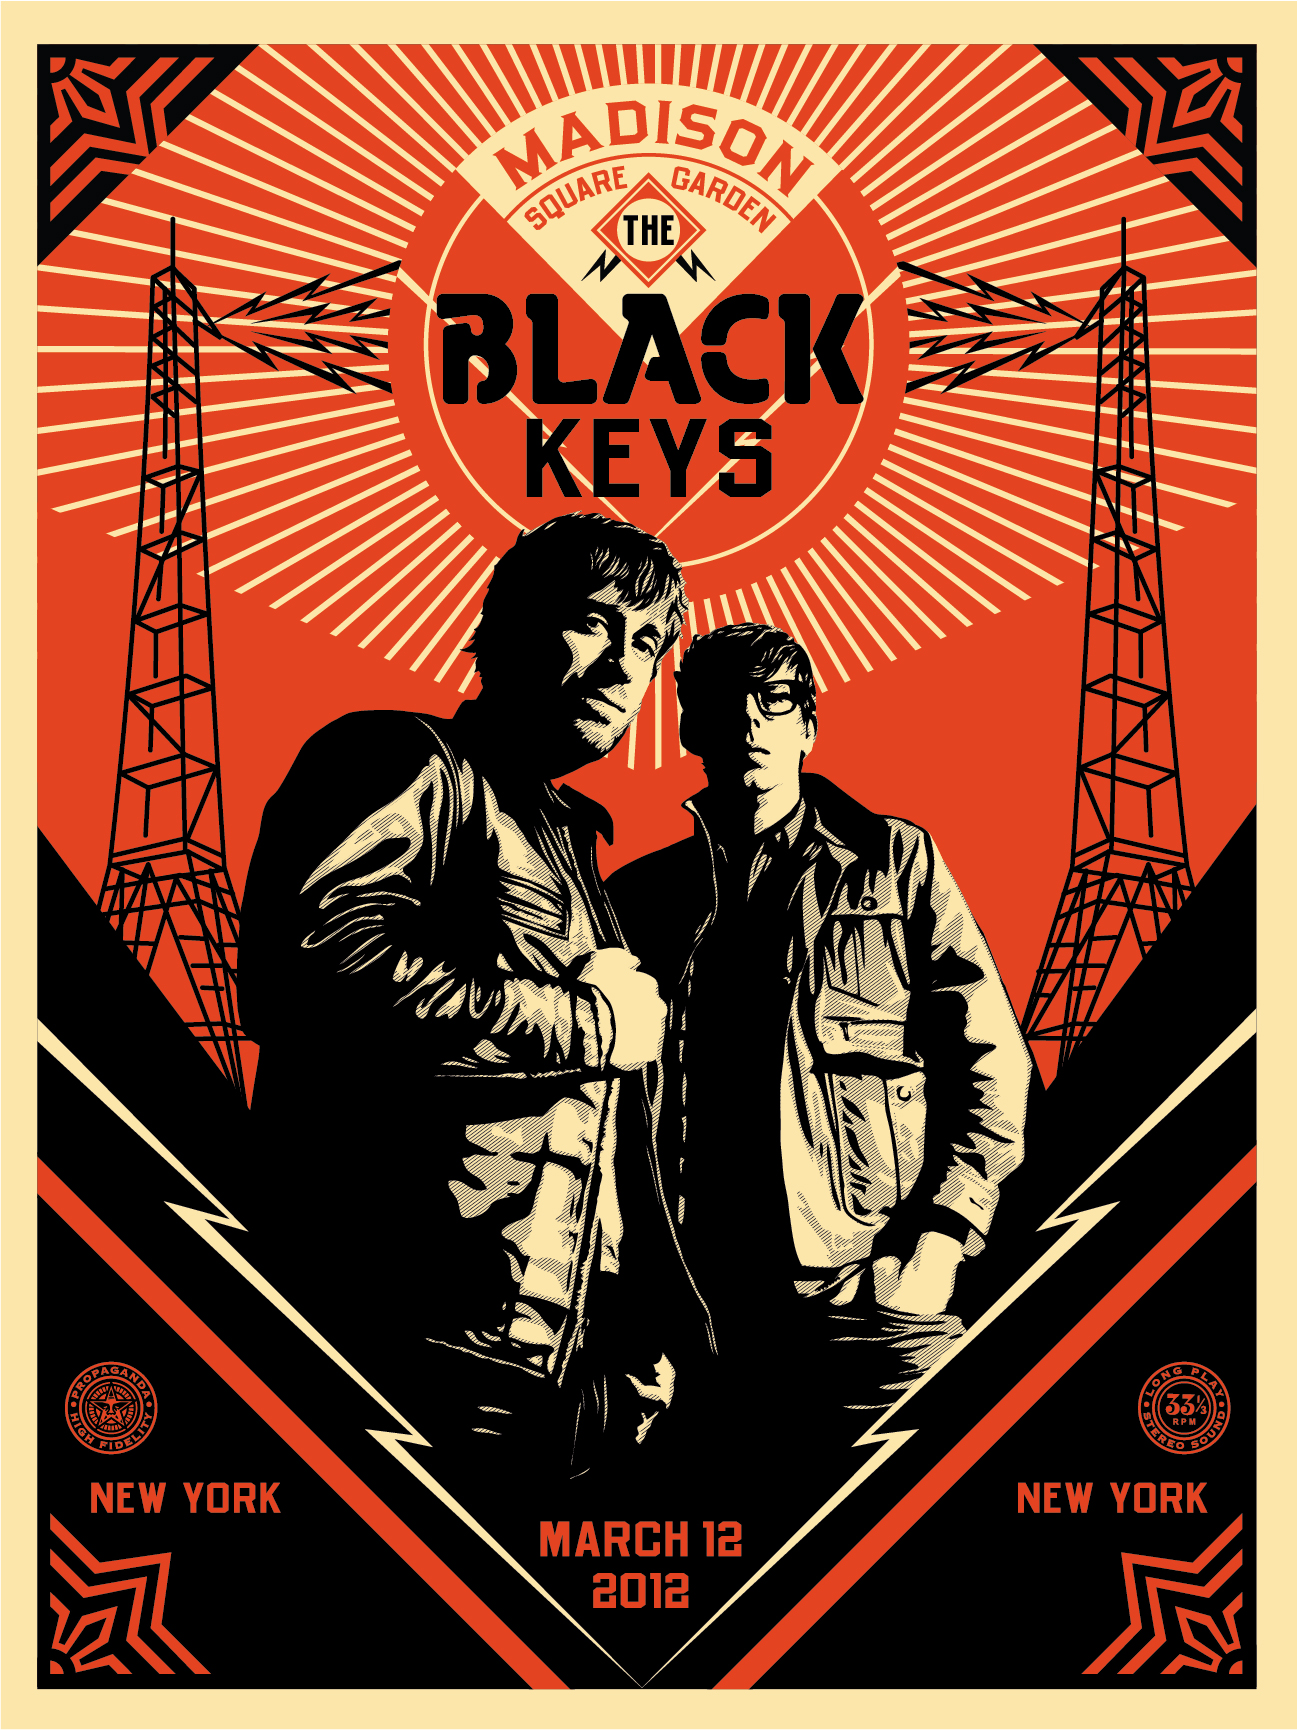 Obey-Chrstofer-Johnson-BLACK-KEYS-Portrait